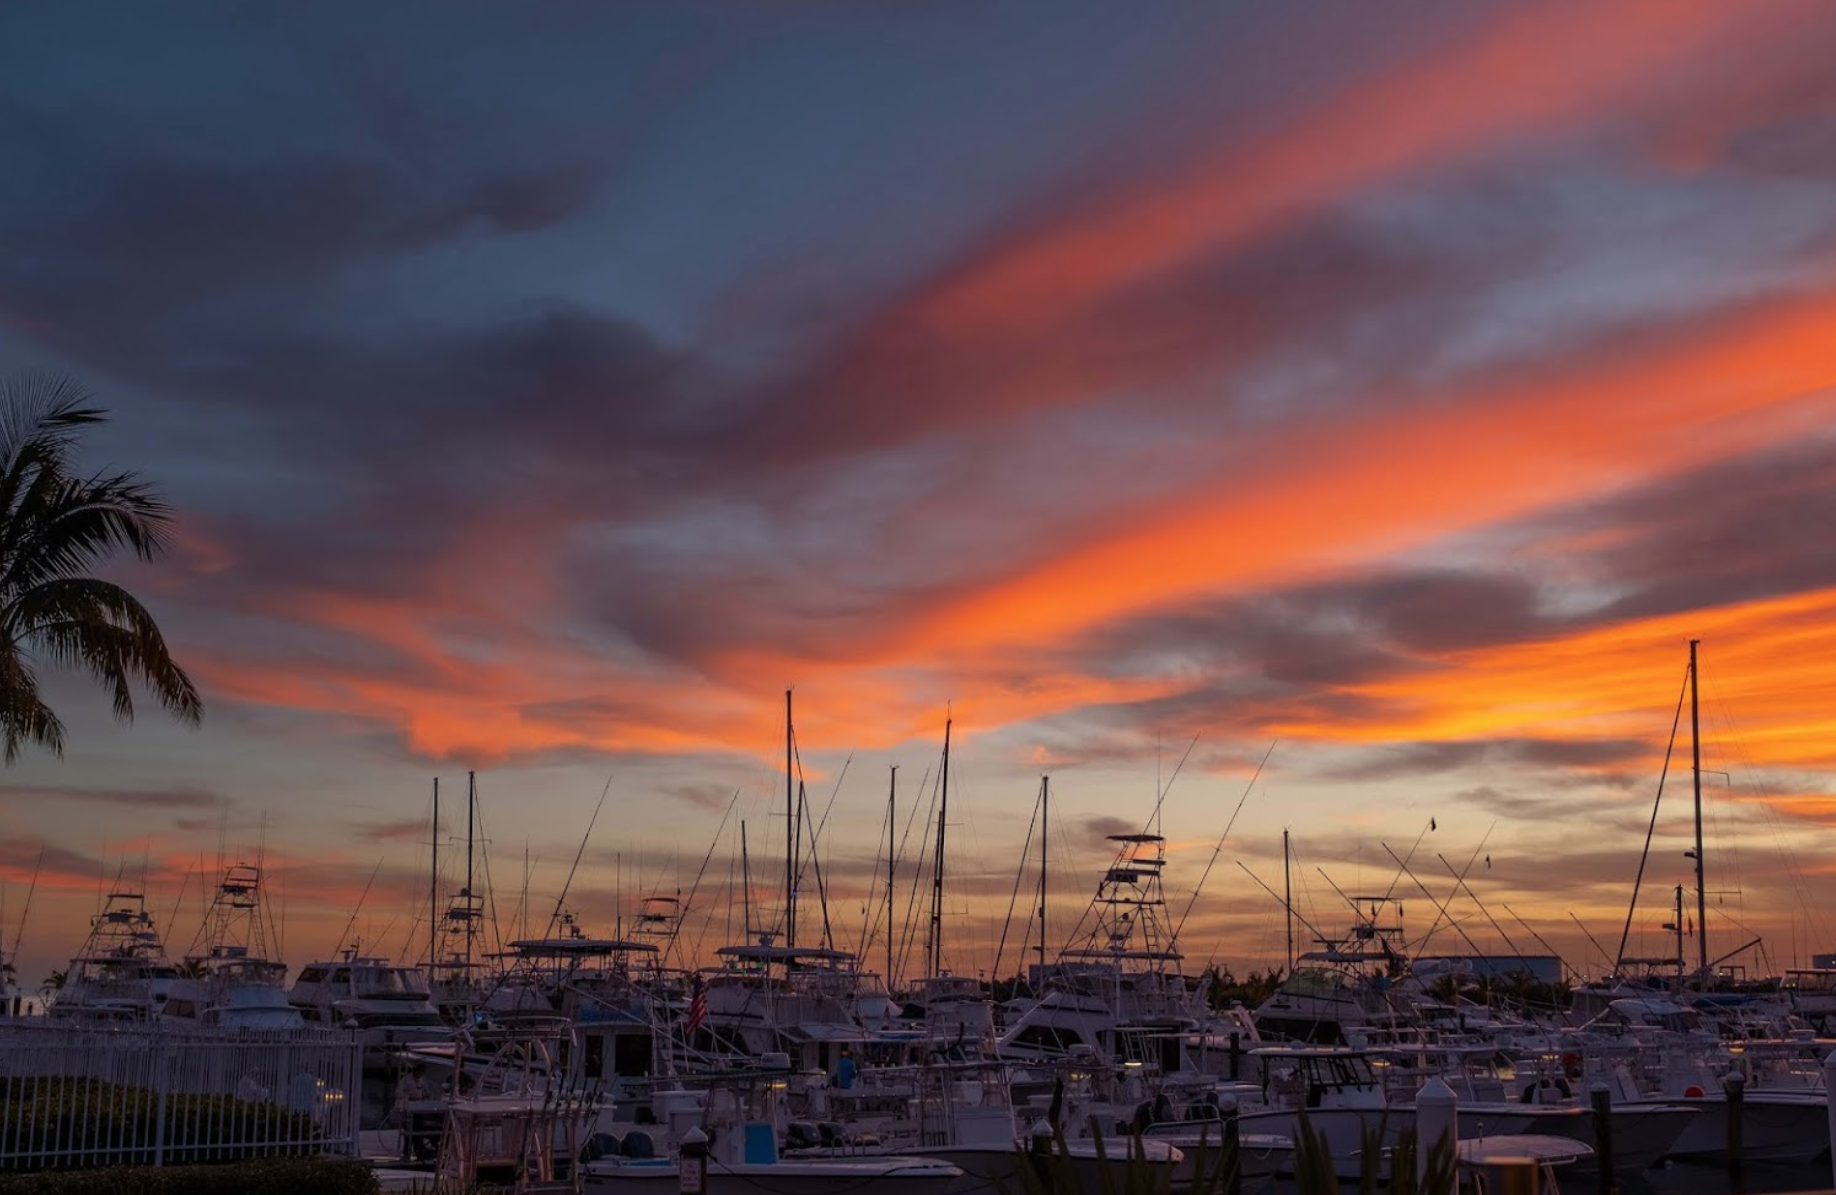 Sunset over boats docked in a marina.